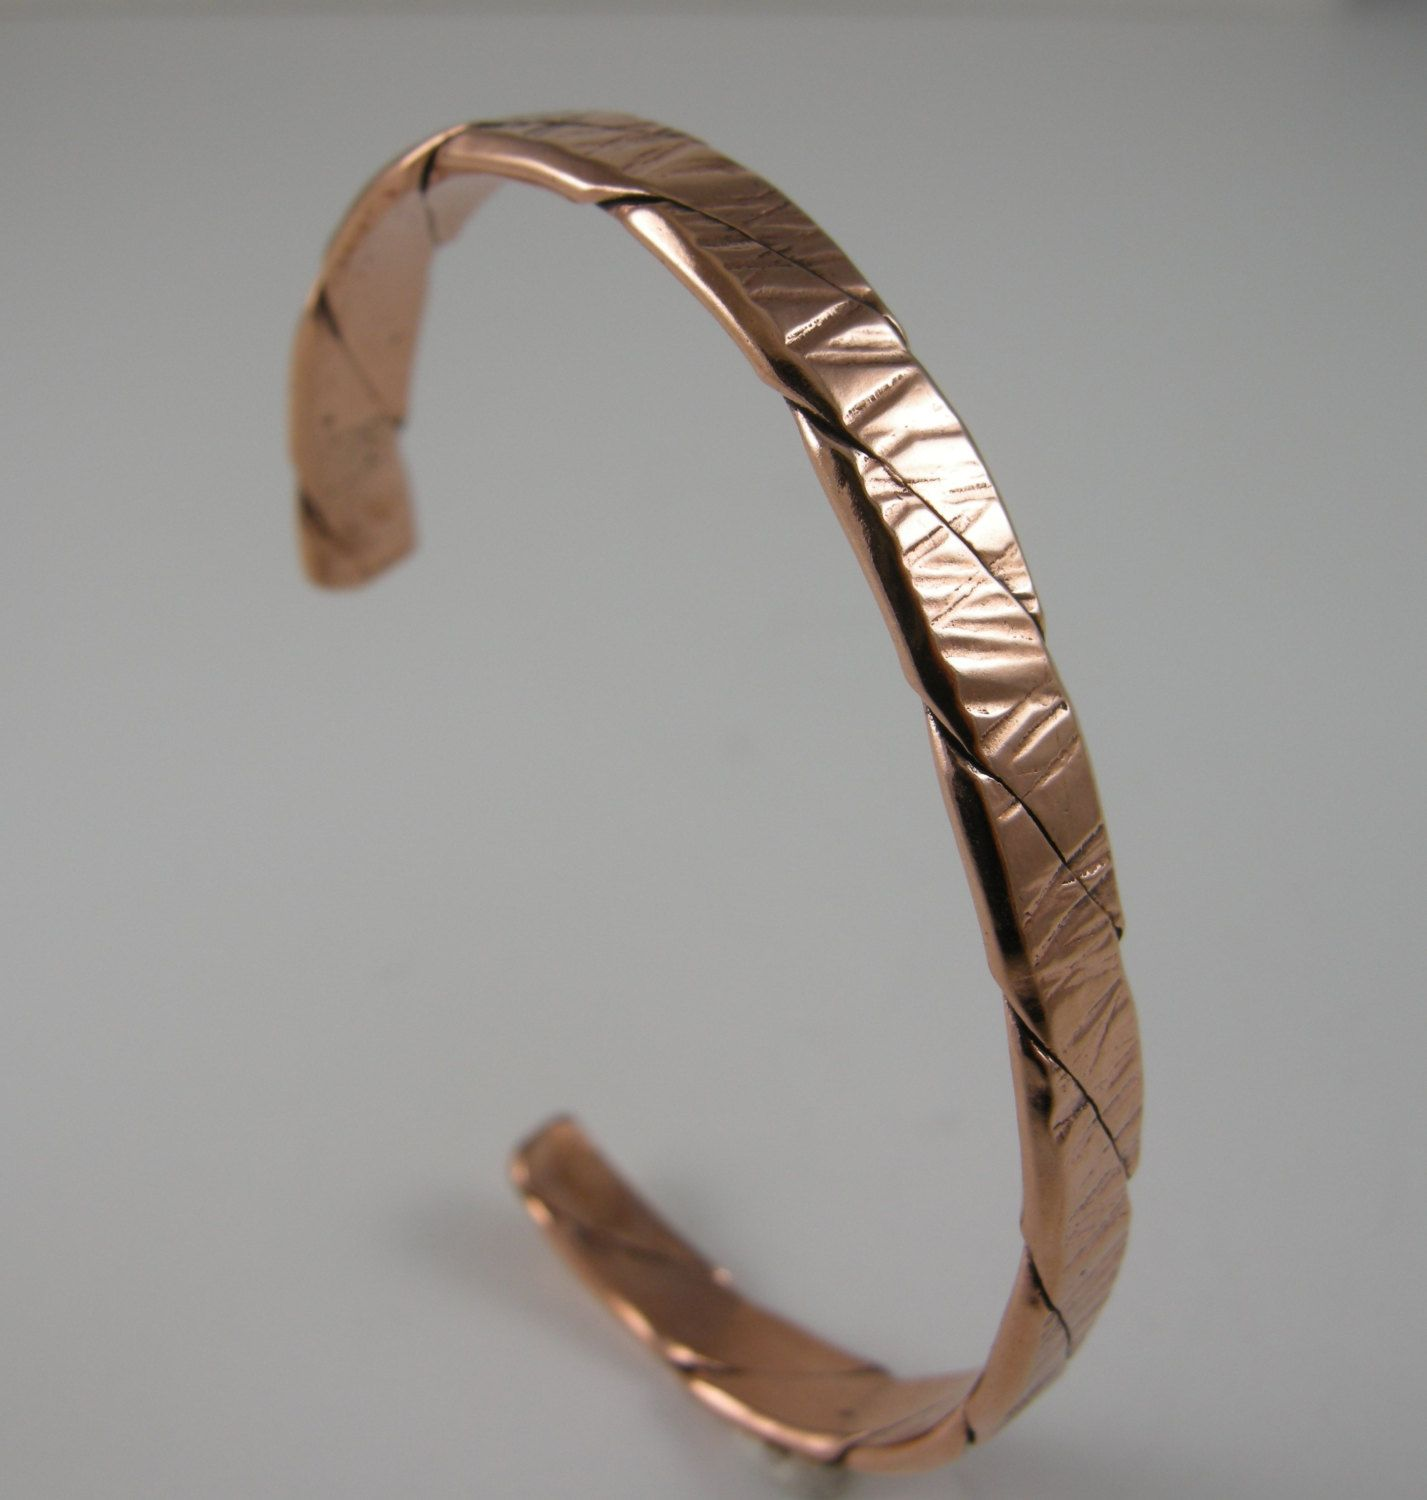 BRACELET SOLID COPPER Heavy 12 Gauge twisted wire 1/4 inch wide ...